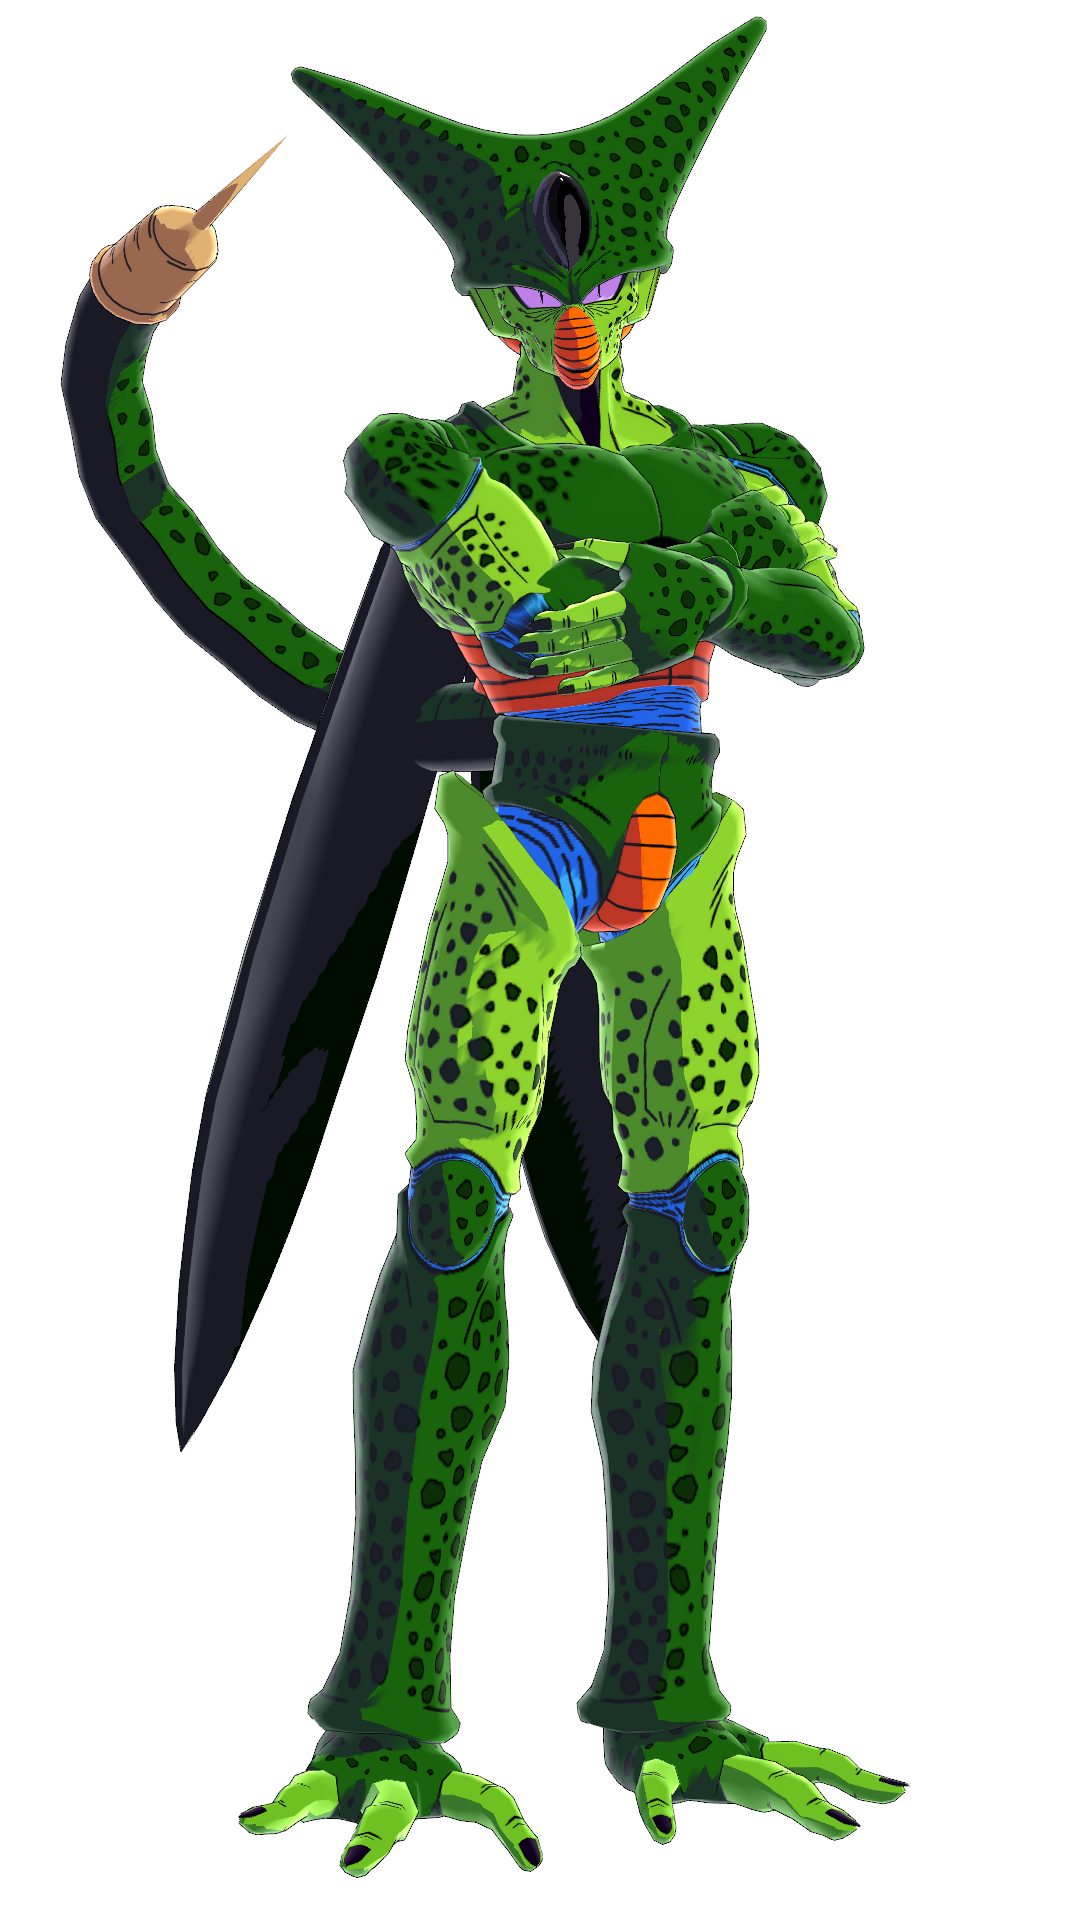 MMD - Imperfect Cell Download by Togekisspika35 on DeviantArt